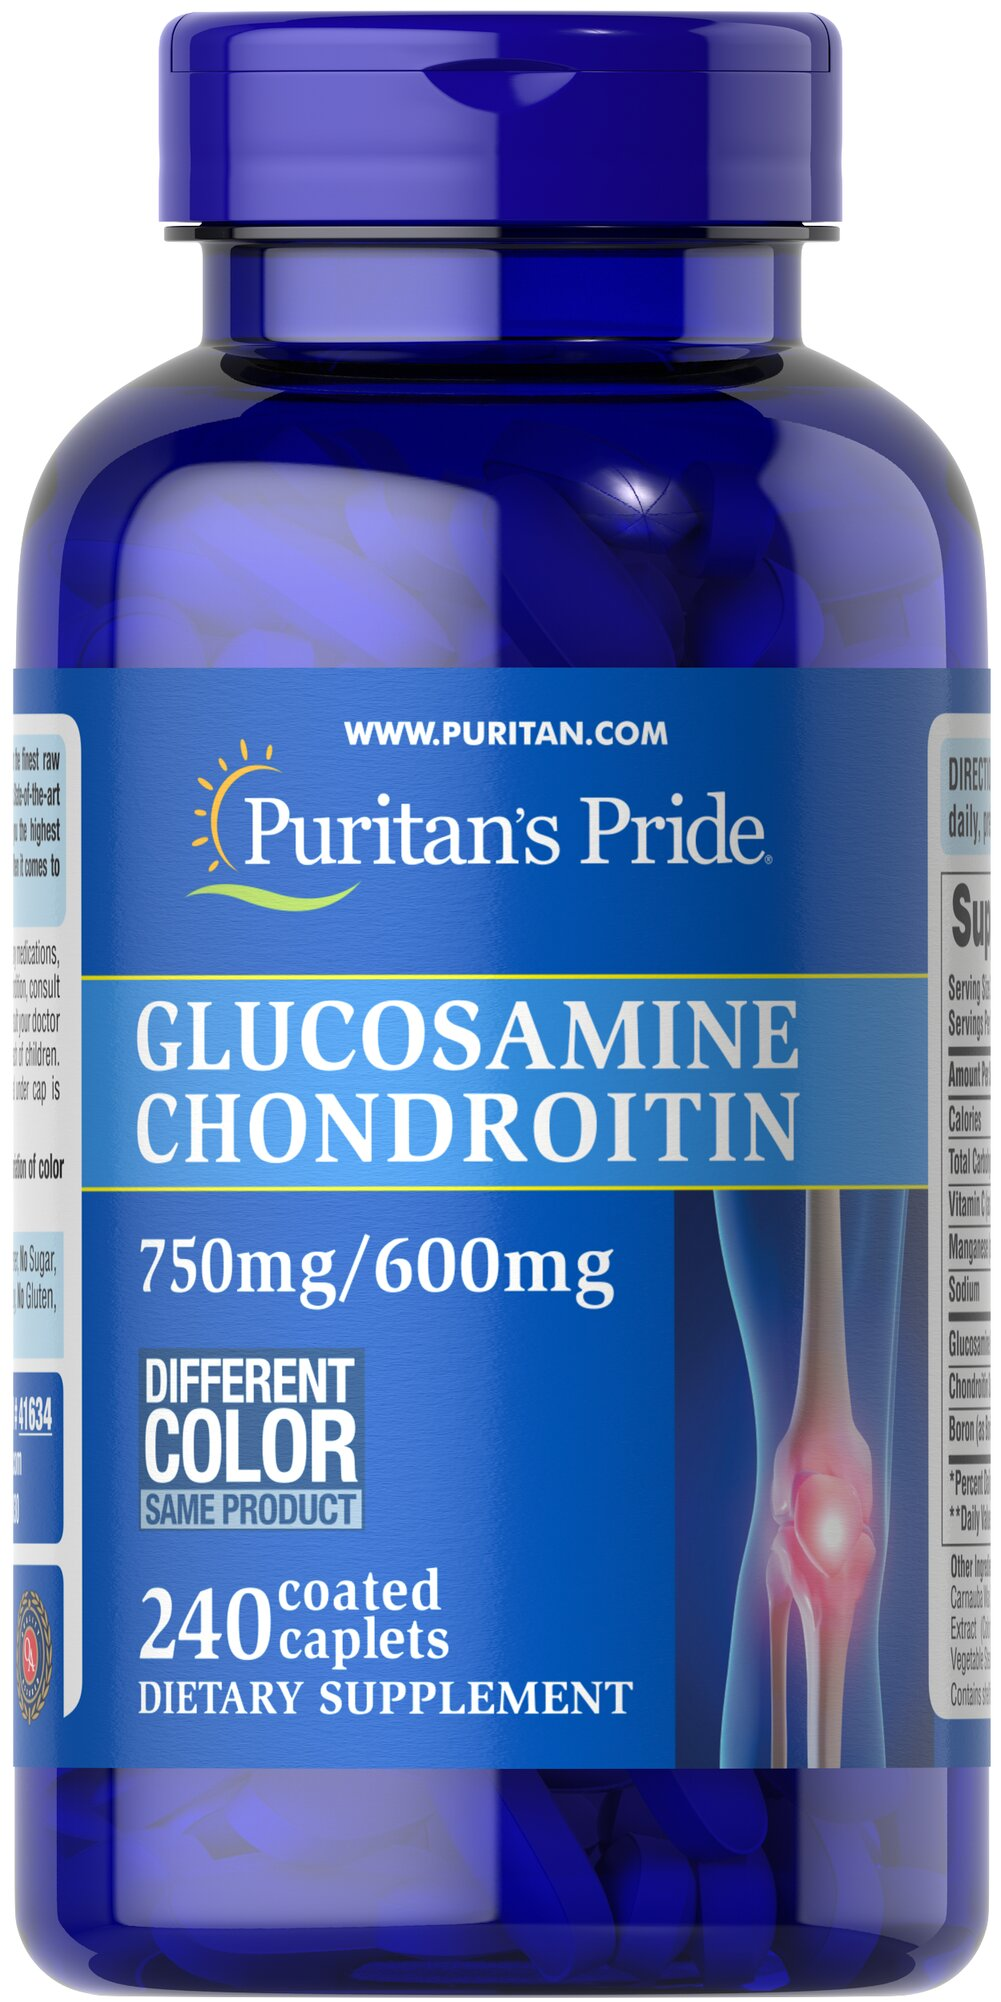 Triple Strength Glucosamine Chondroitin 750 mg/600 mg  240 Caplets 750 mg/600 mg $99.99